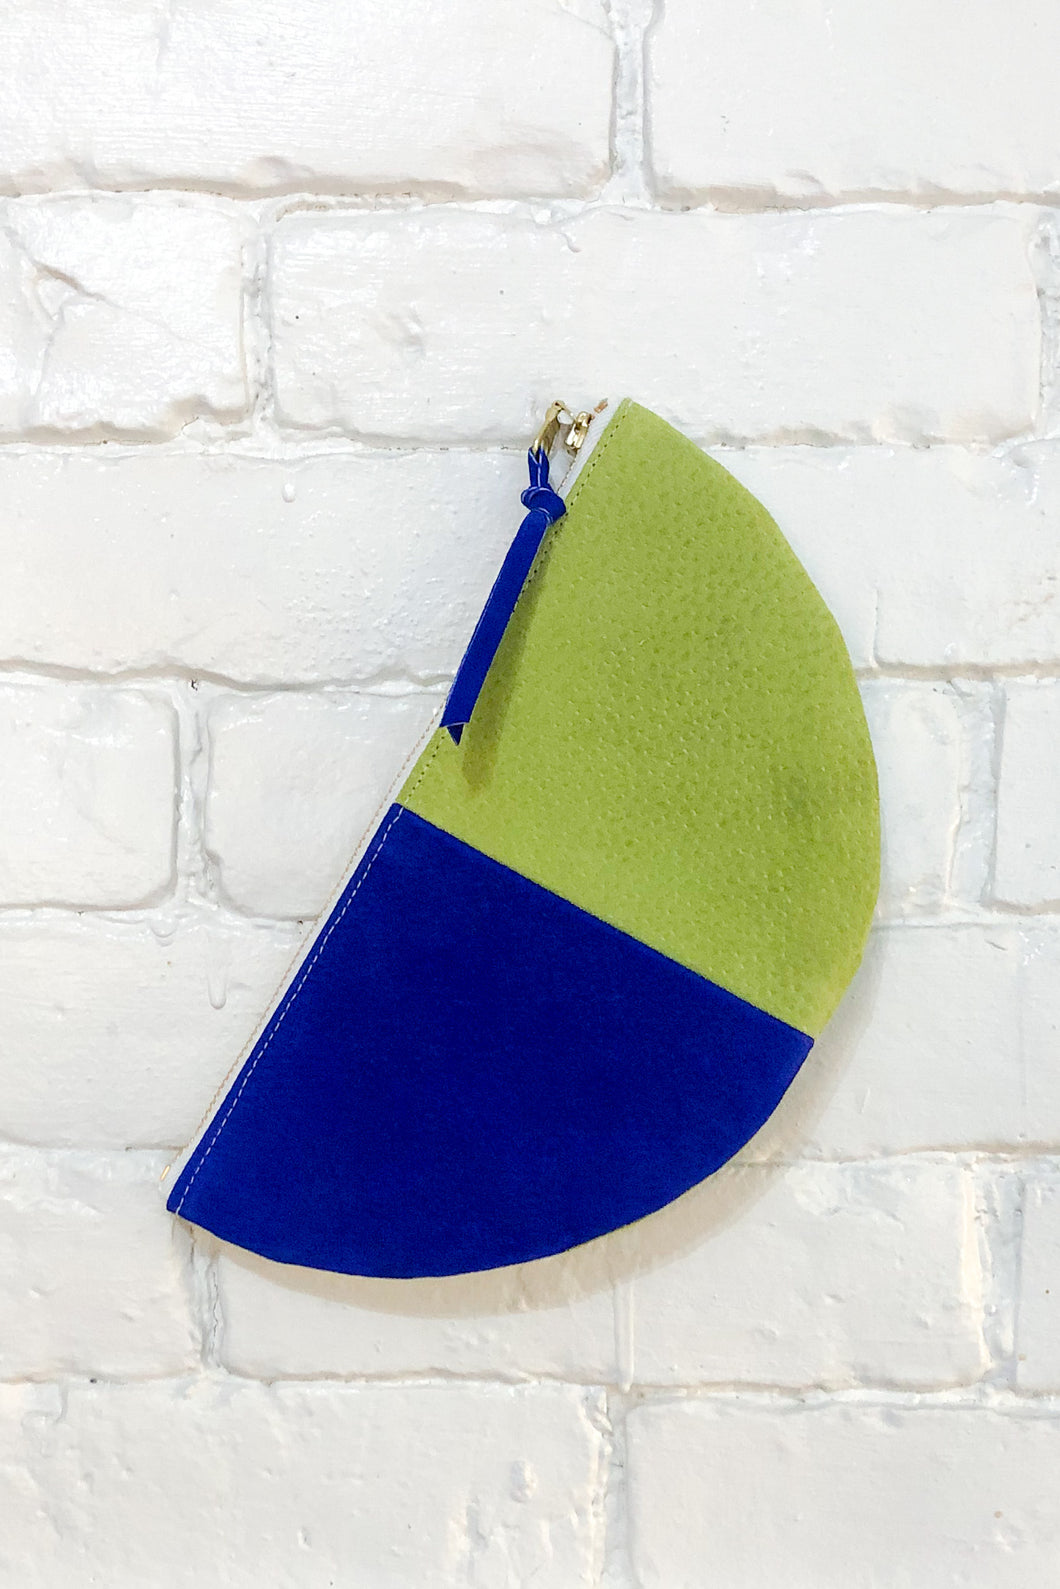 The Half-Moon (Celery, Teal, and Royal)